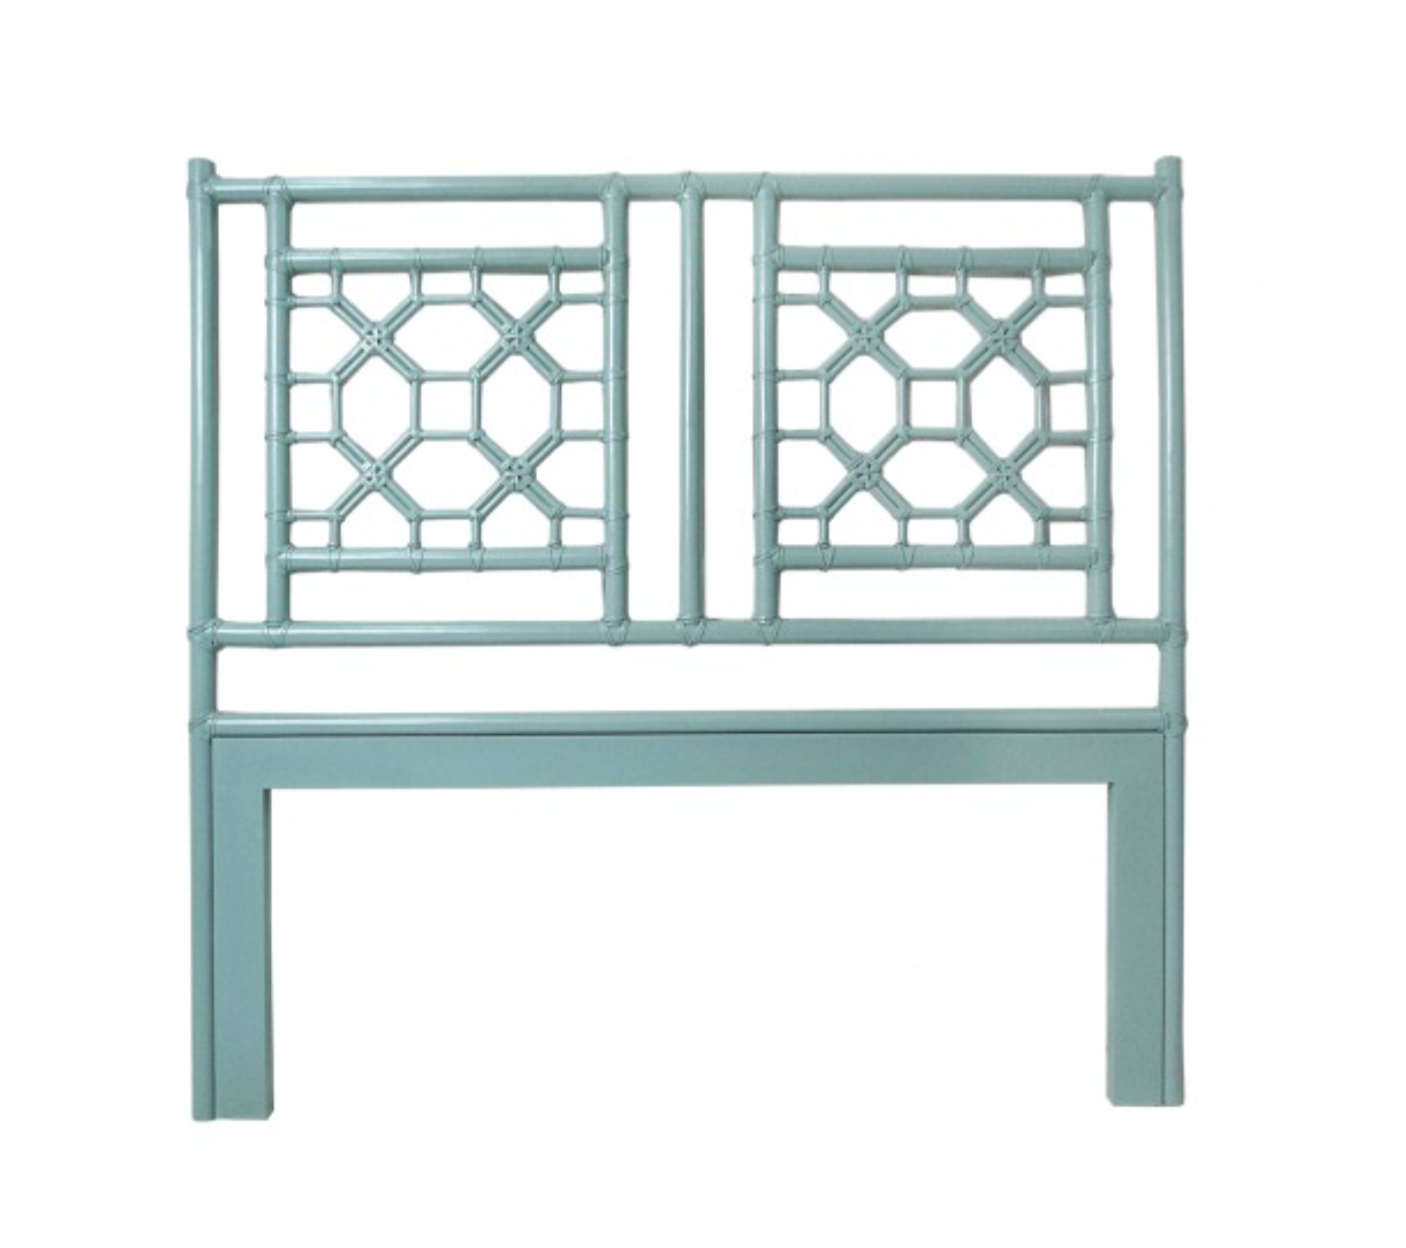 Lattice Headboard In Sky Blue Email For Details Figlinensandhome Gmail Com Open Frame Headboard Lattice Headboard Rattan Headboard